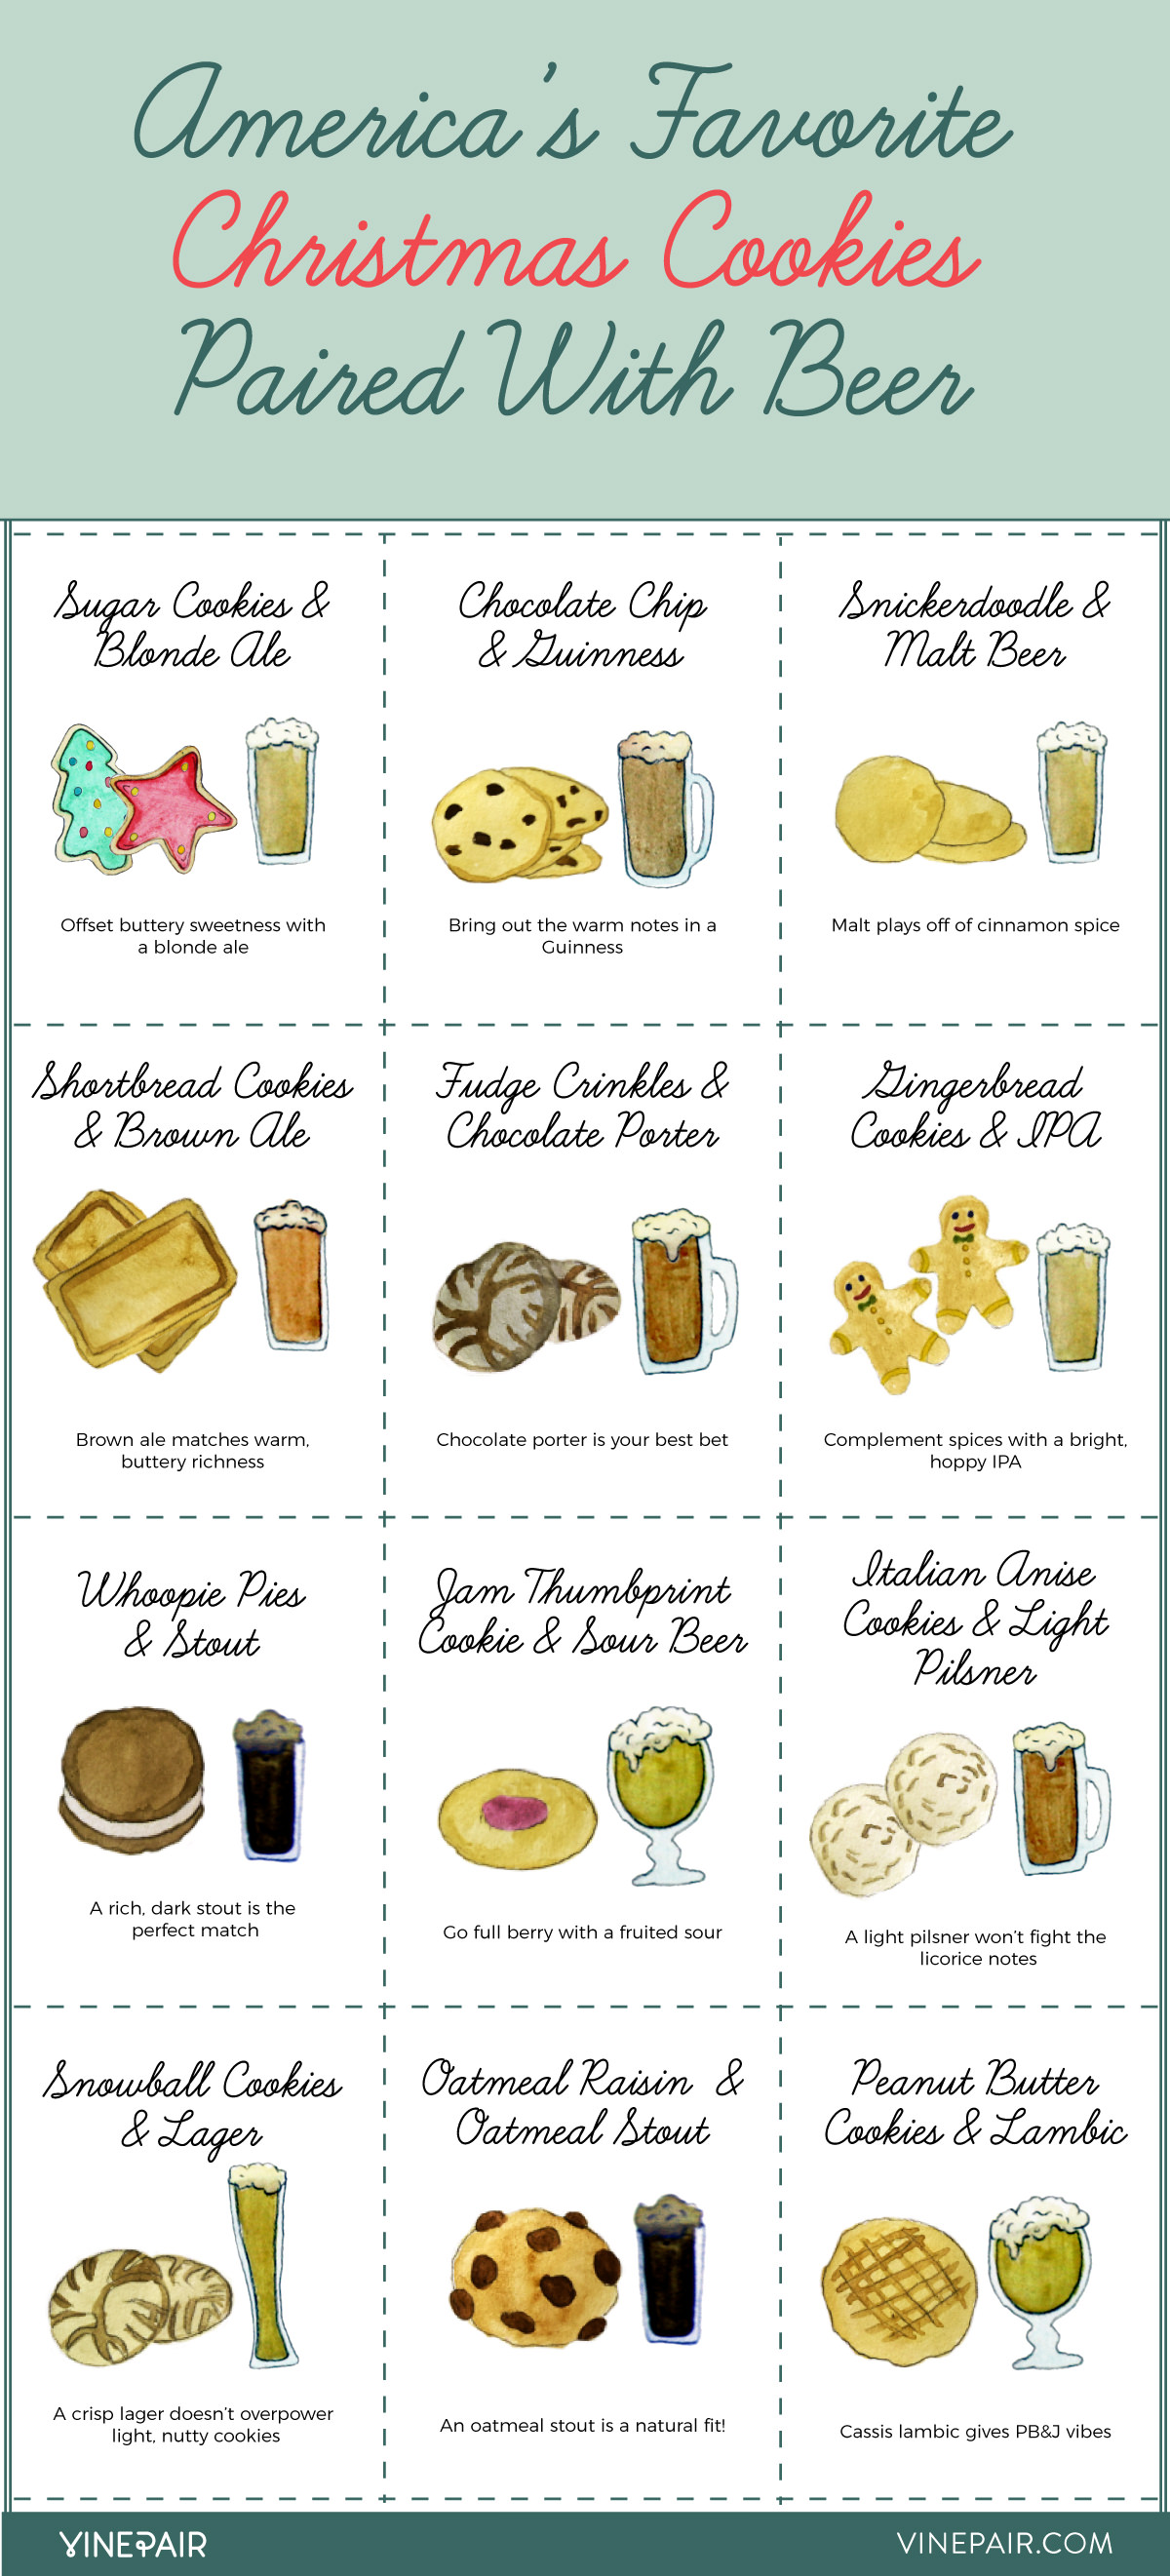 America's Favorite Christmas Cookies Paired with Beer